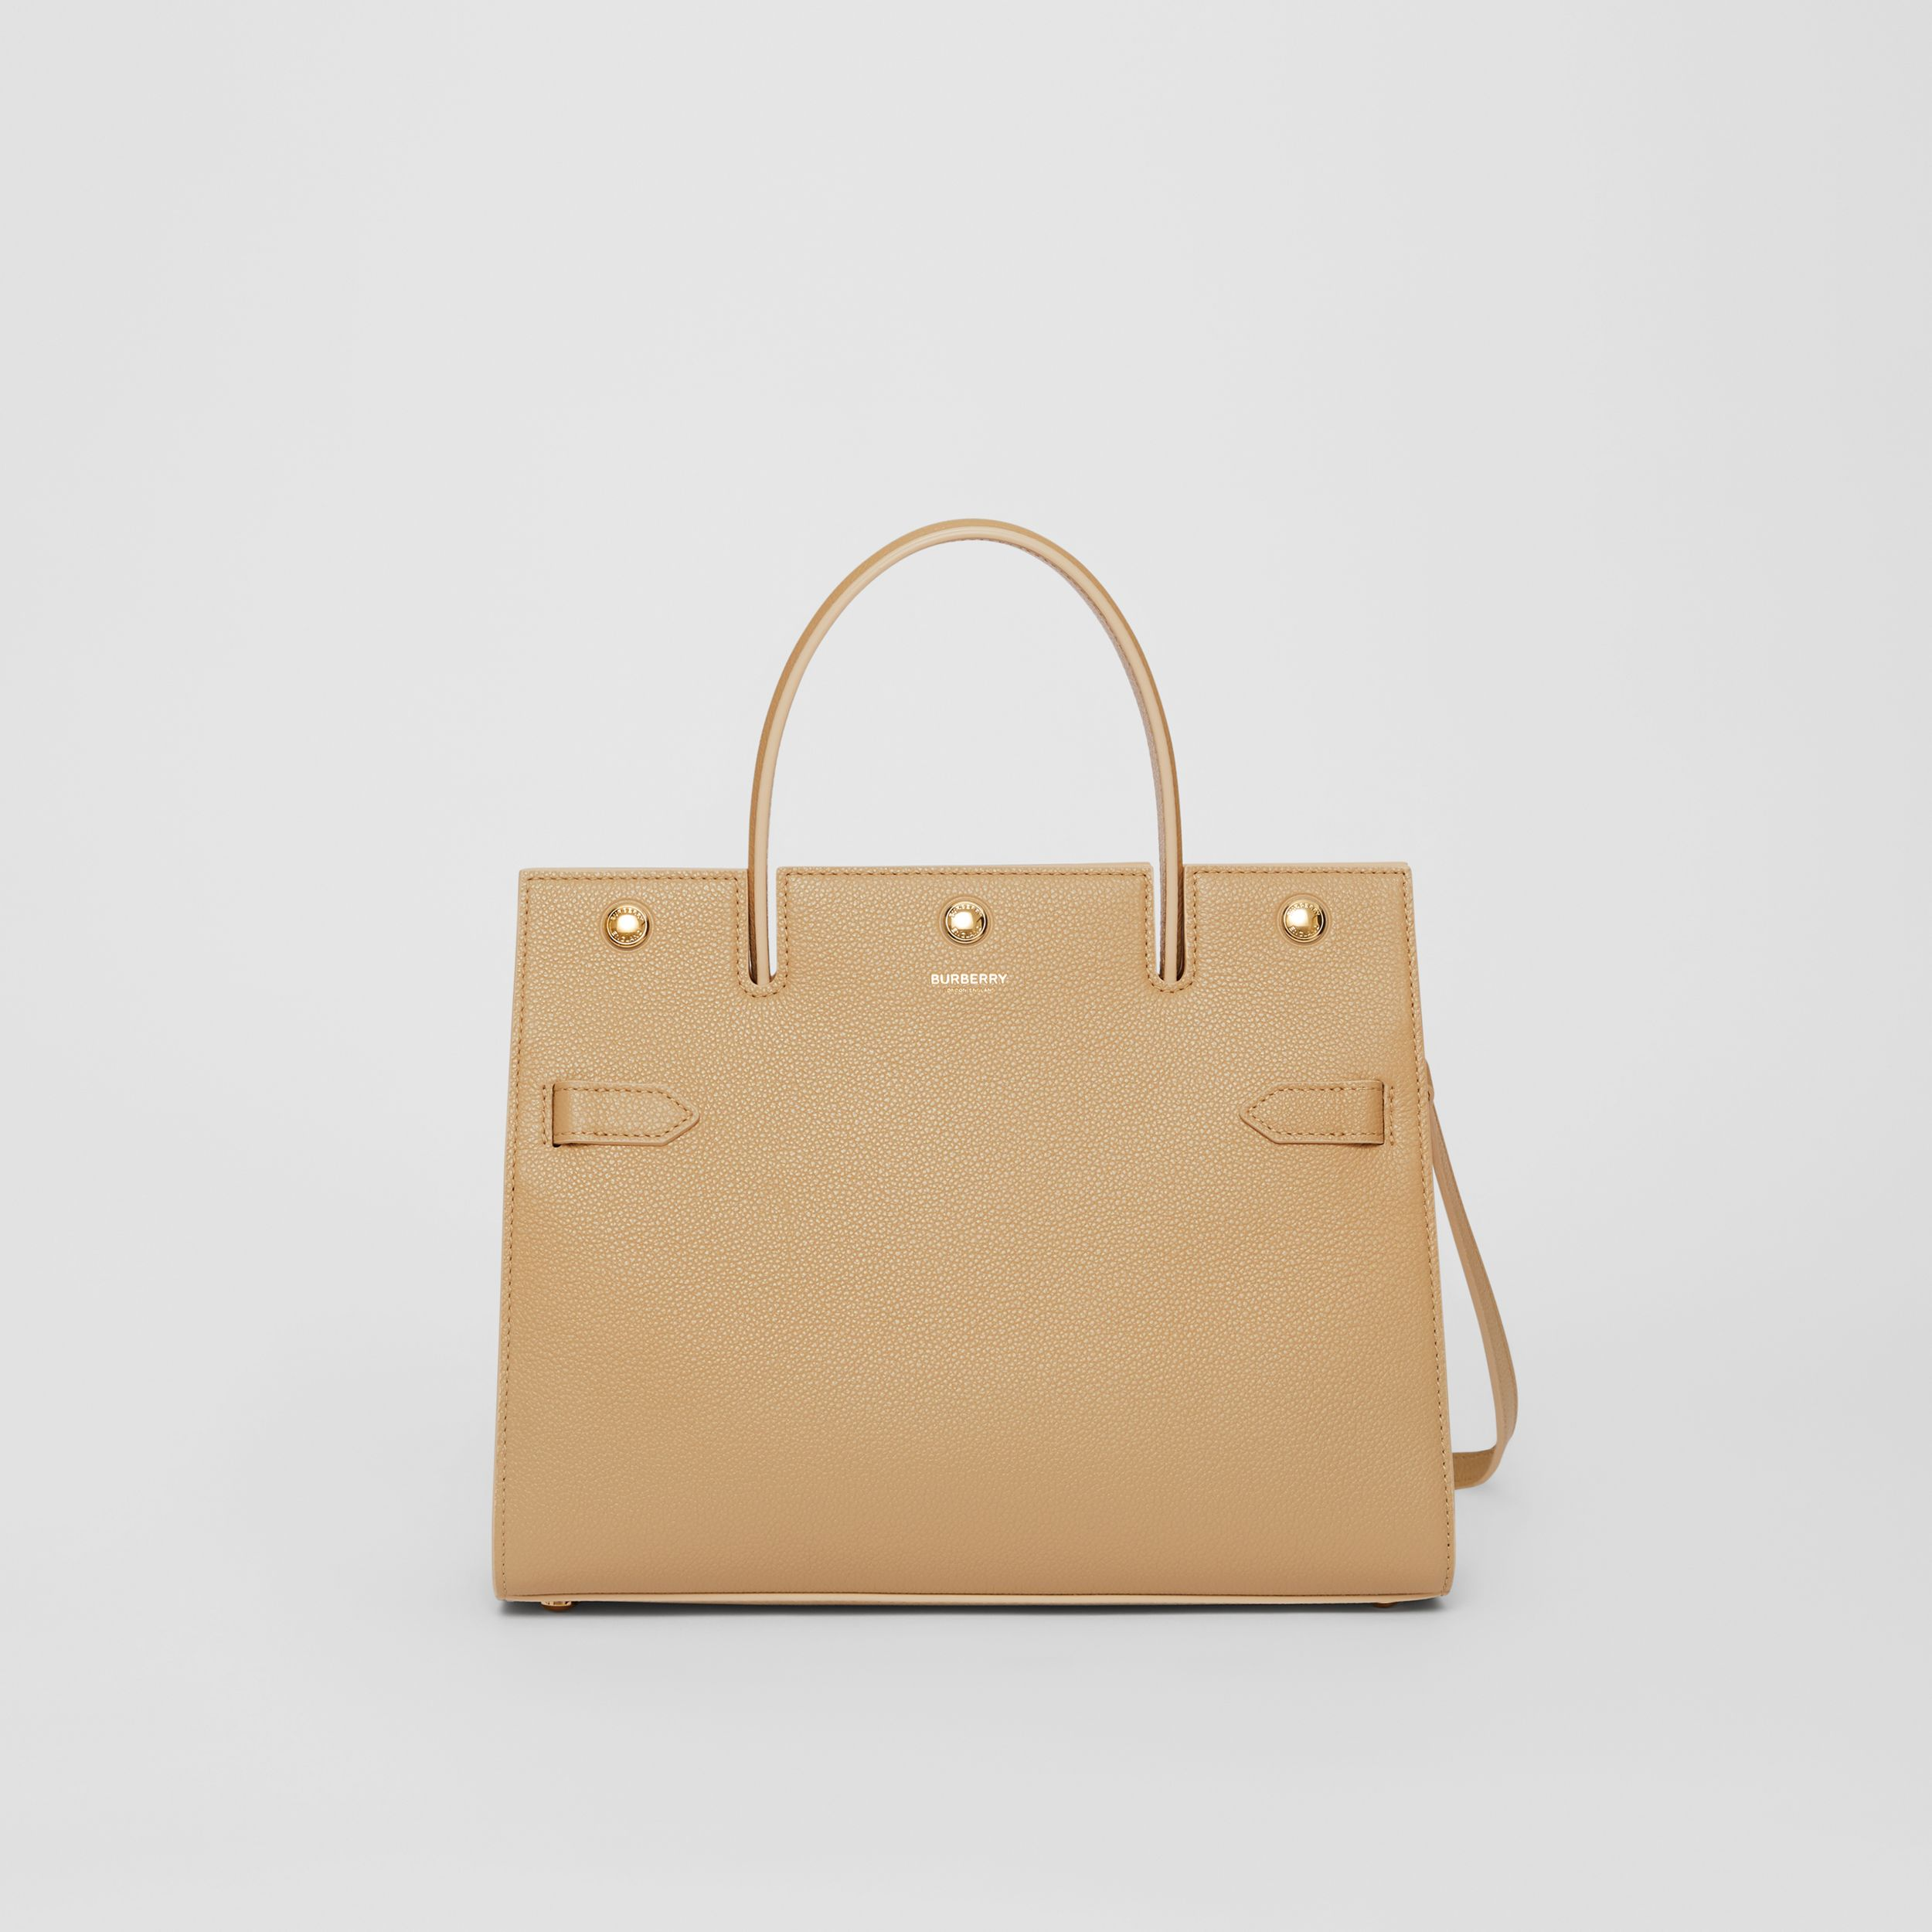 Small Leather Title Bag in Honey - Women | Burberry - 1